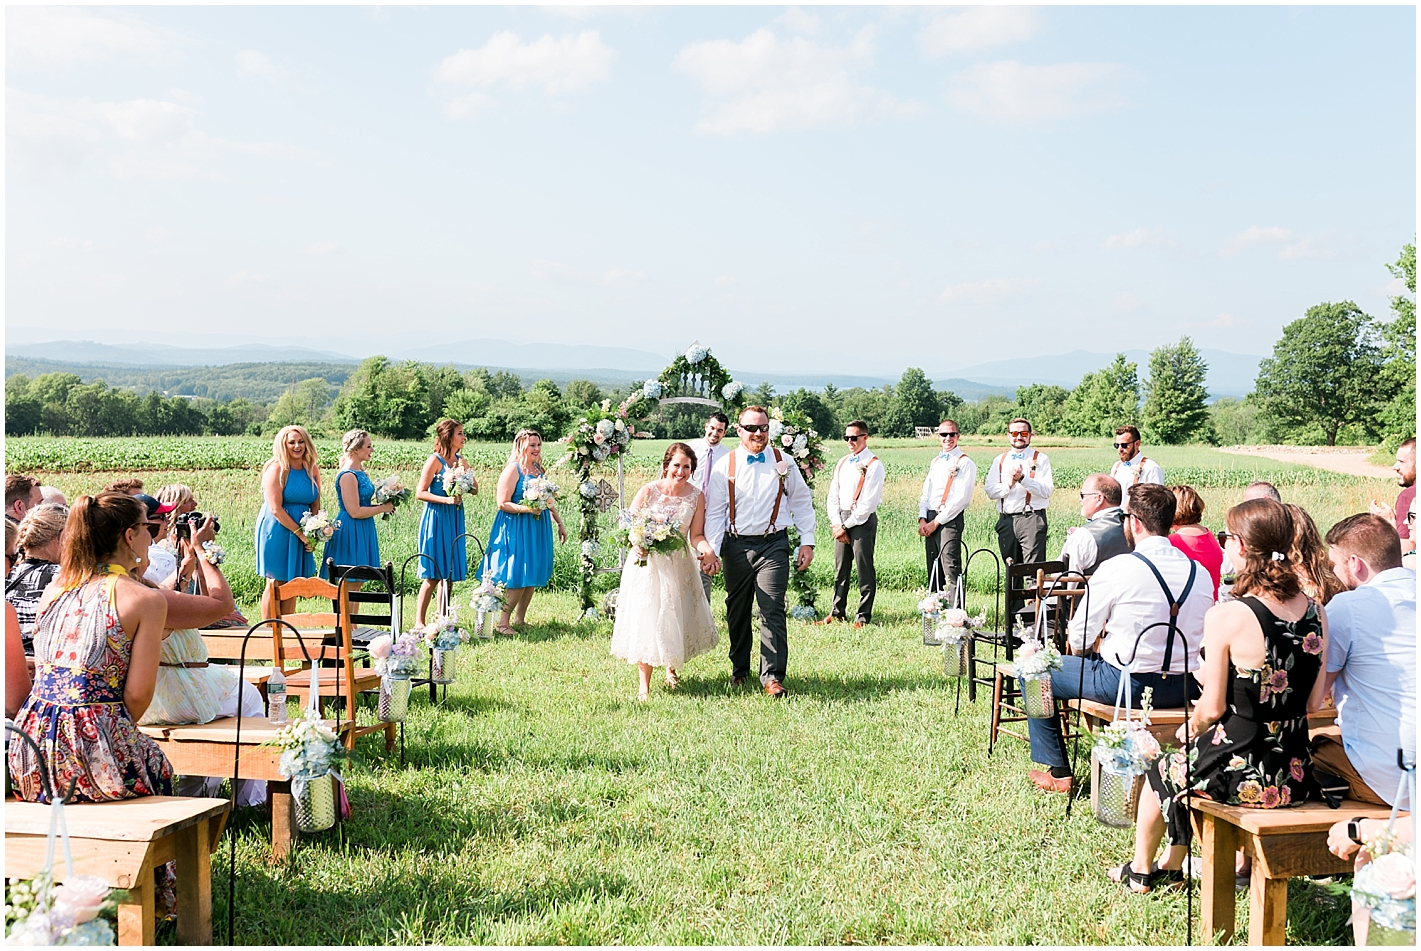 Alice and Wonderland Themed Wedding Ceremony Gilford NH Photos by Alyssa Parker Photography